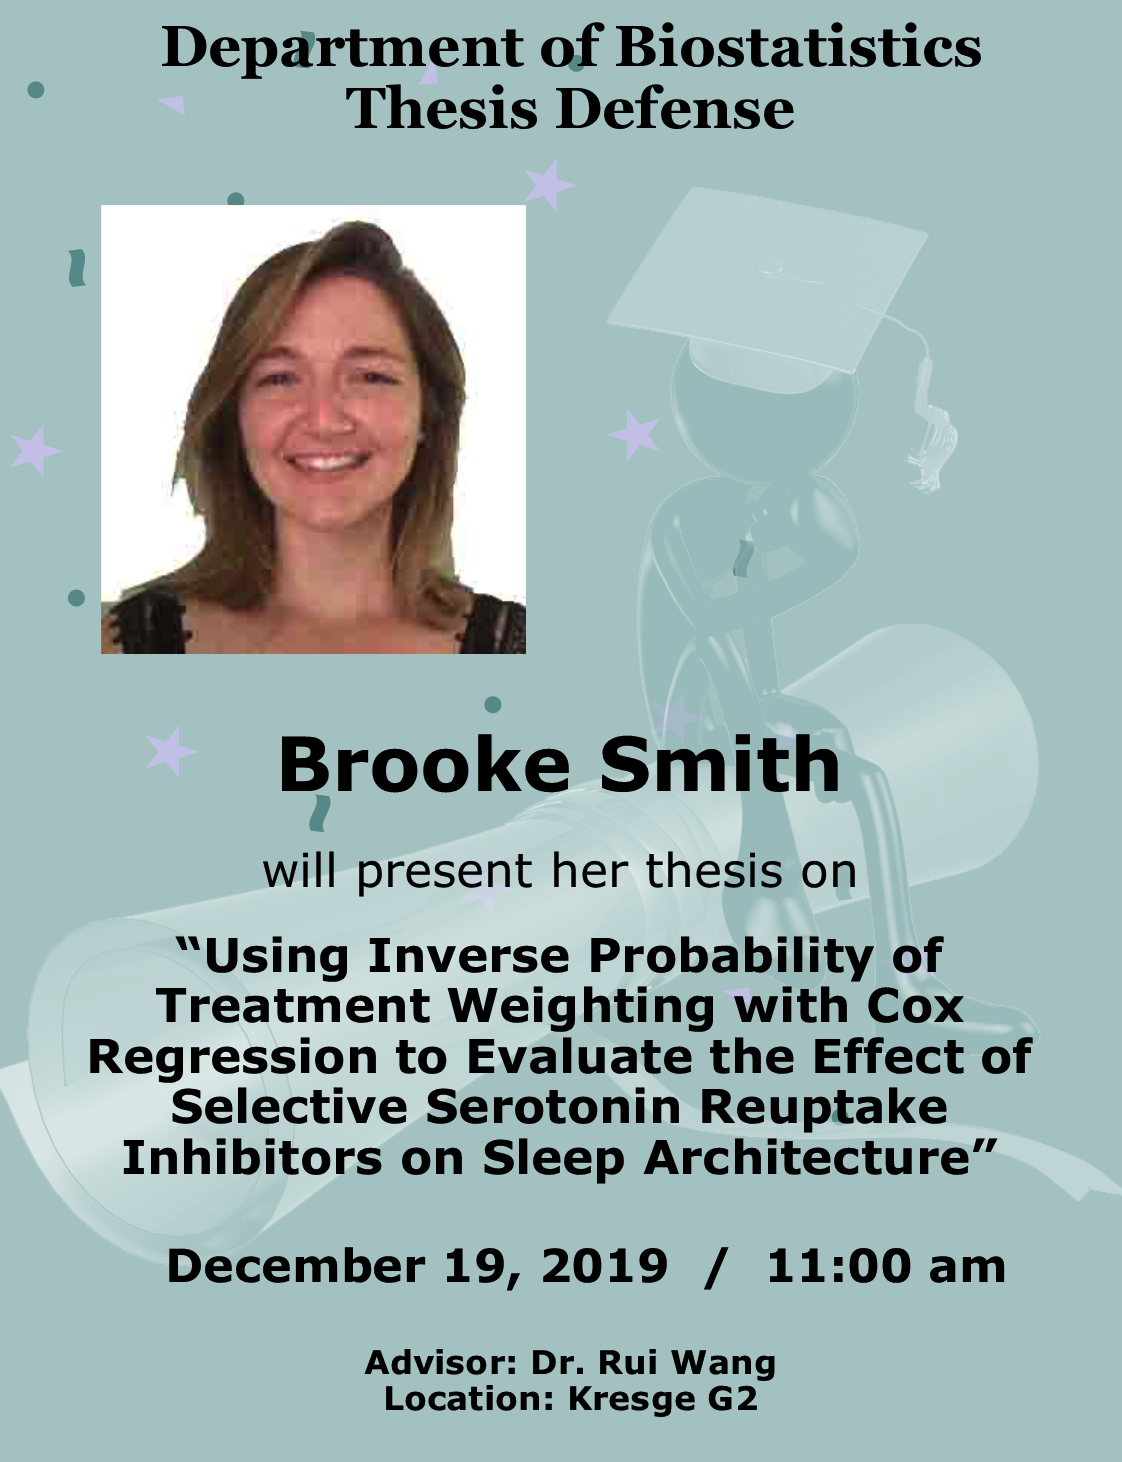 Brooke Smith Thesis Defense announcement